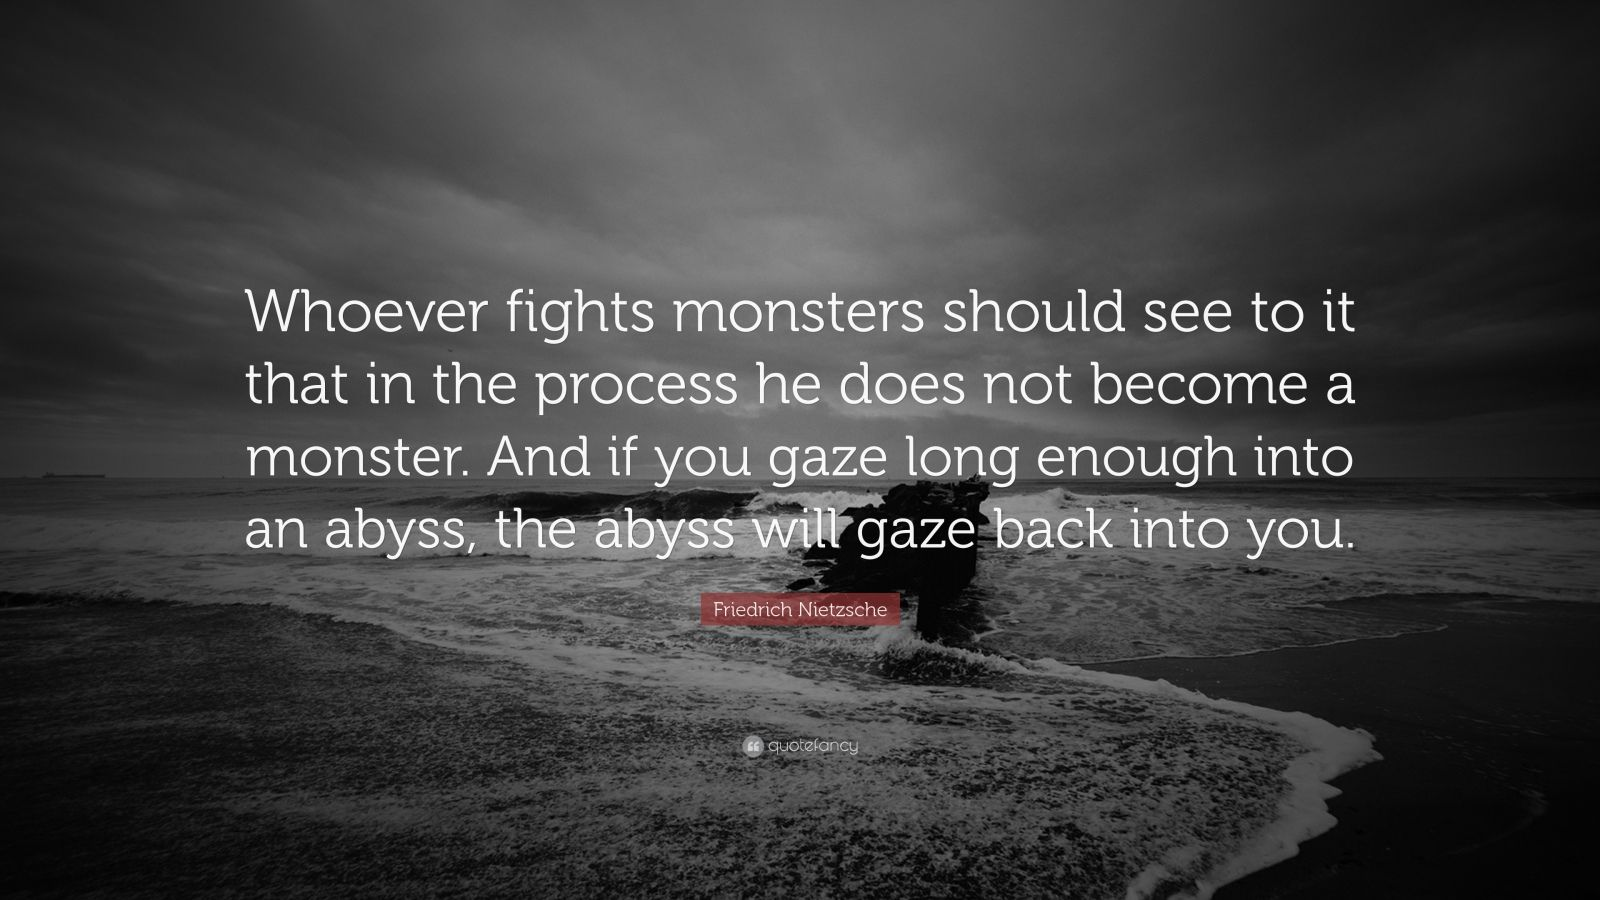 "Friedrich Nietzsche Quote: ""Whoever fights monsters should see to it that in the process he does not become a monster. And if you gaze long enough into an abyss, the abyss will gaze back into you."""